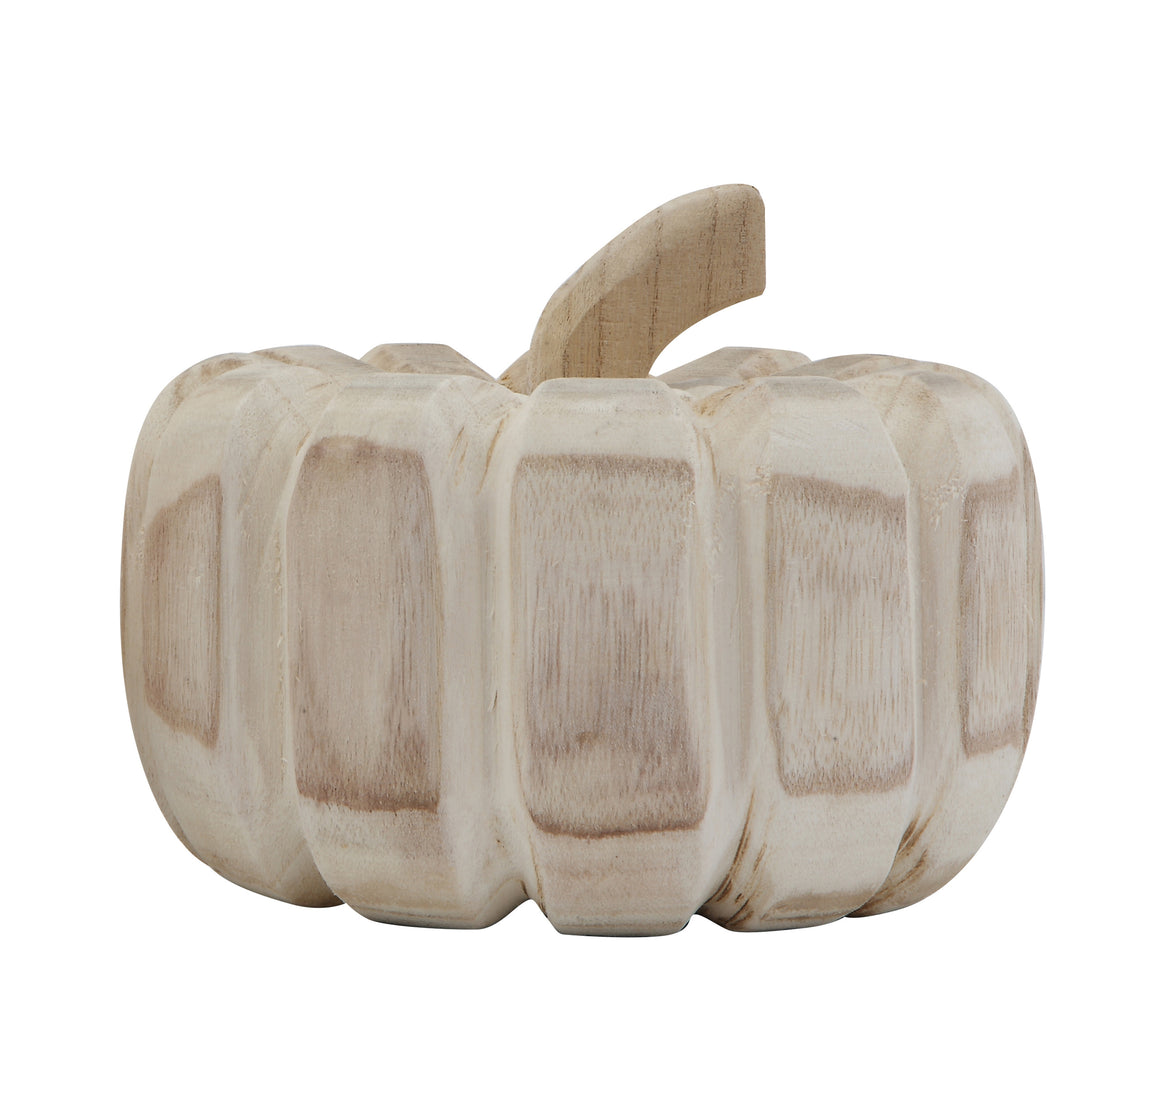 "6.75"" Carved Wood Pumpkin"